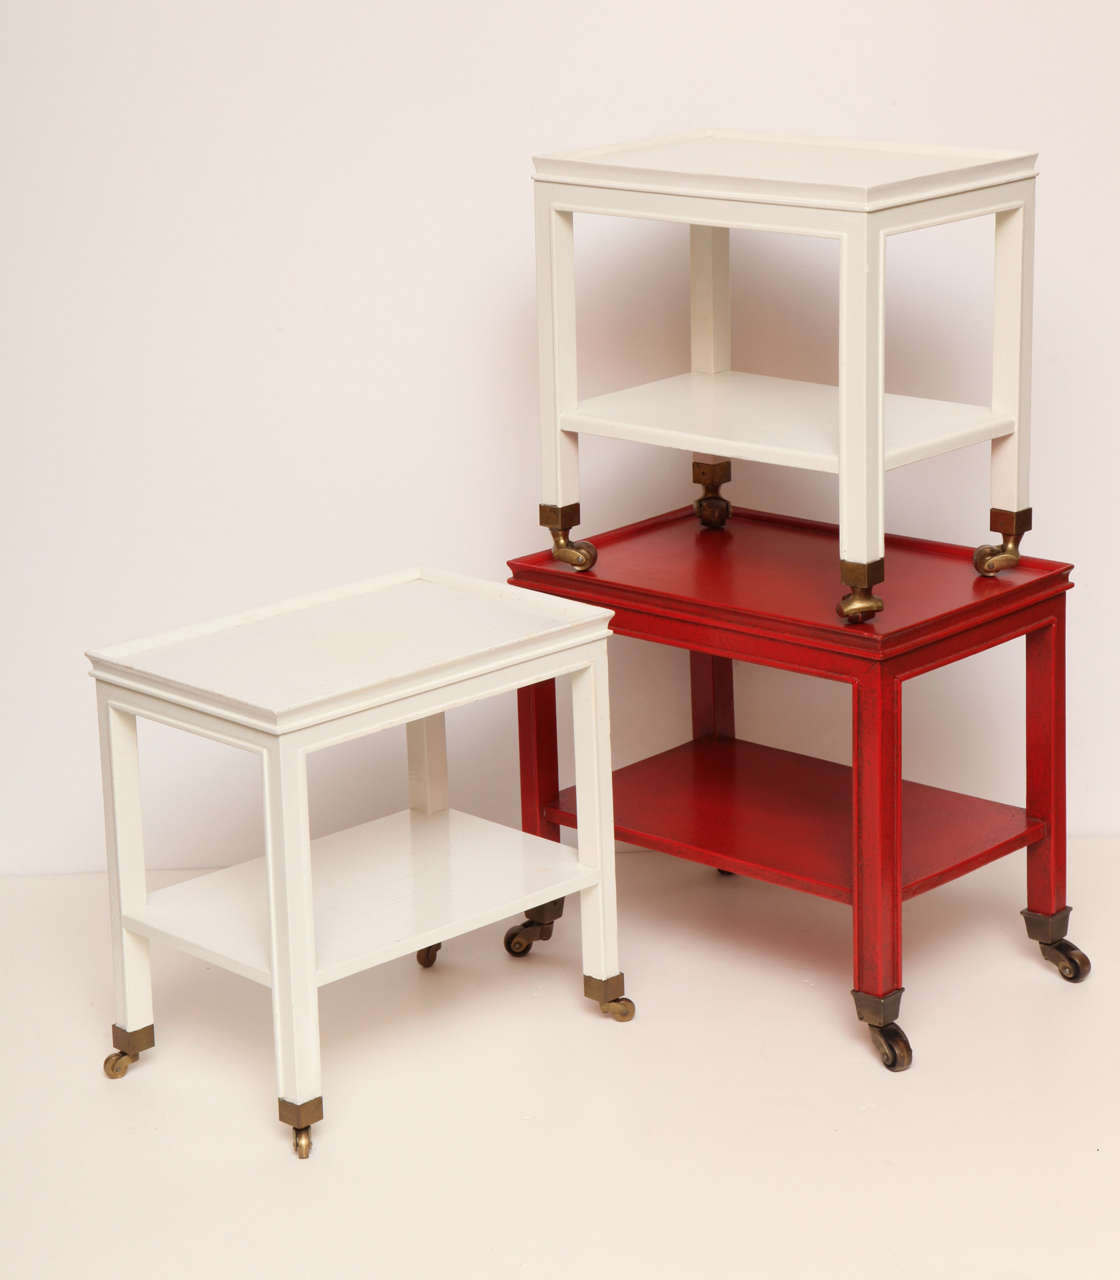 Three Telephone Tables by Jansen from the Collection of Brooke Astor 3